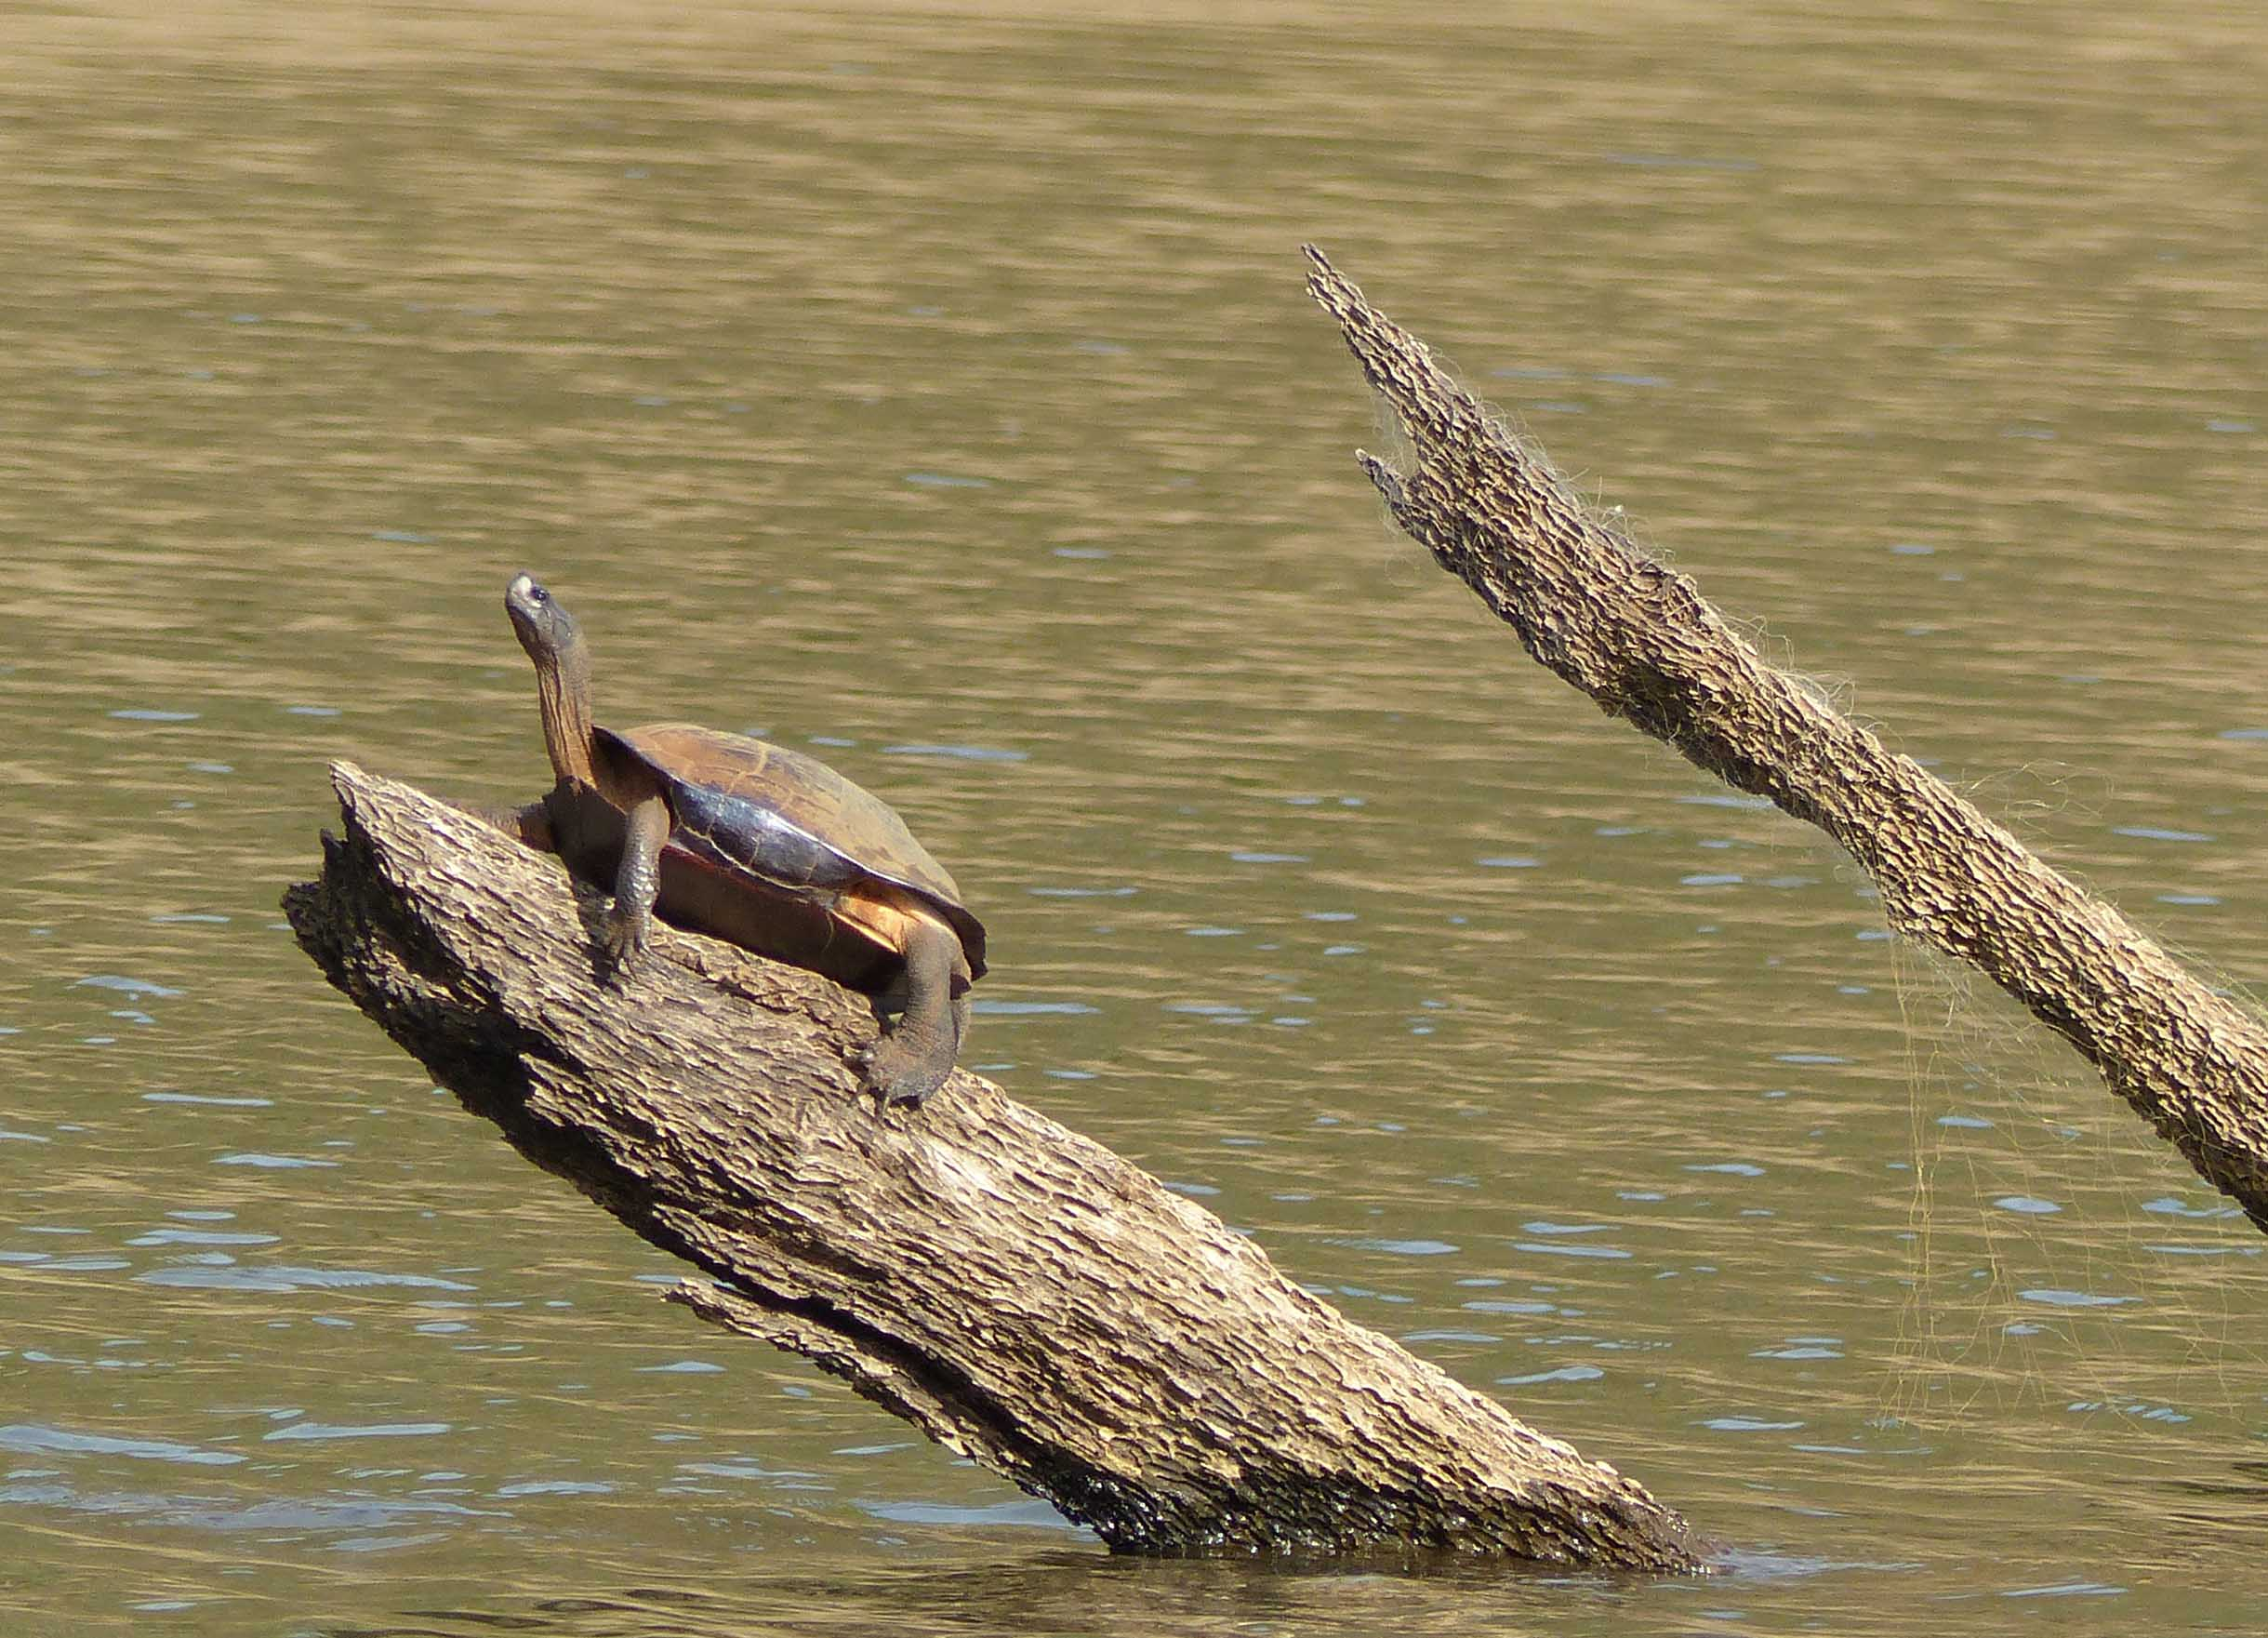 Turtle on a log in water